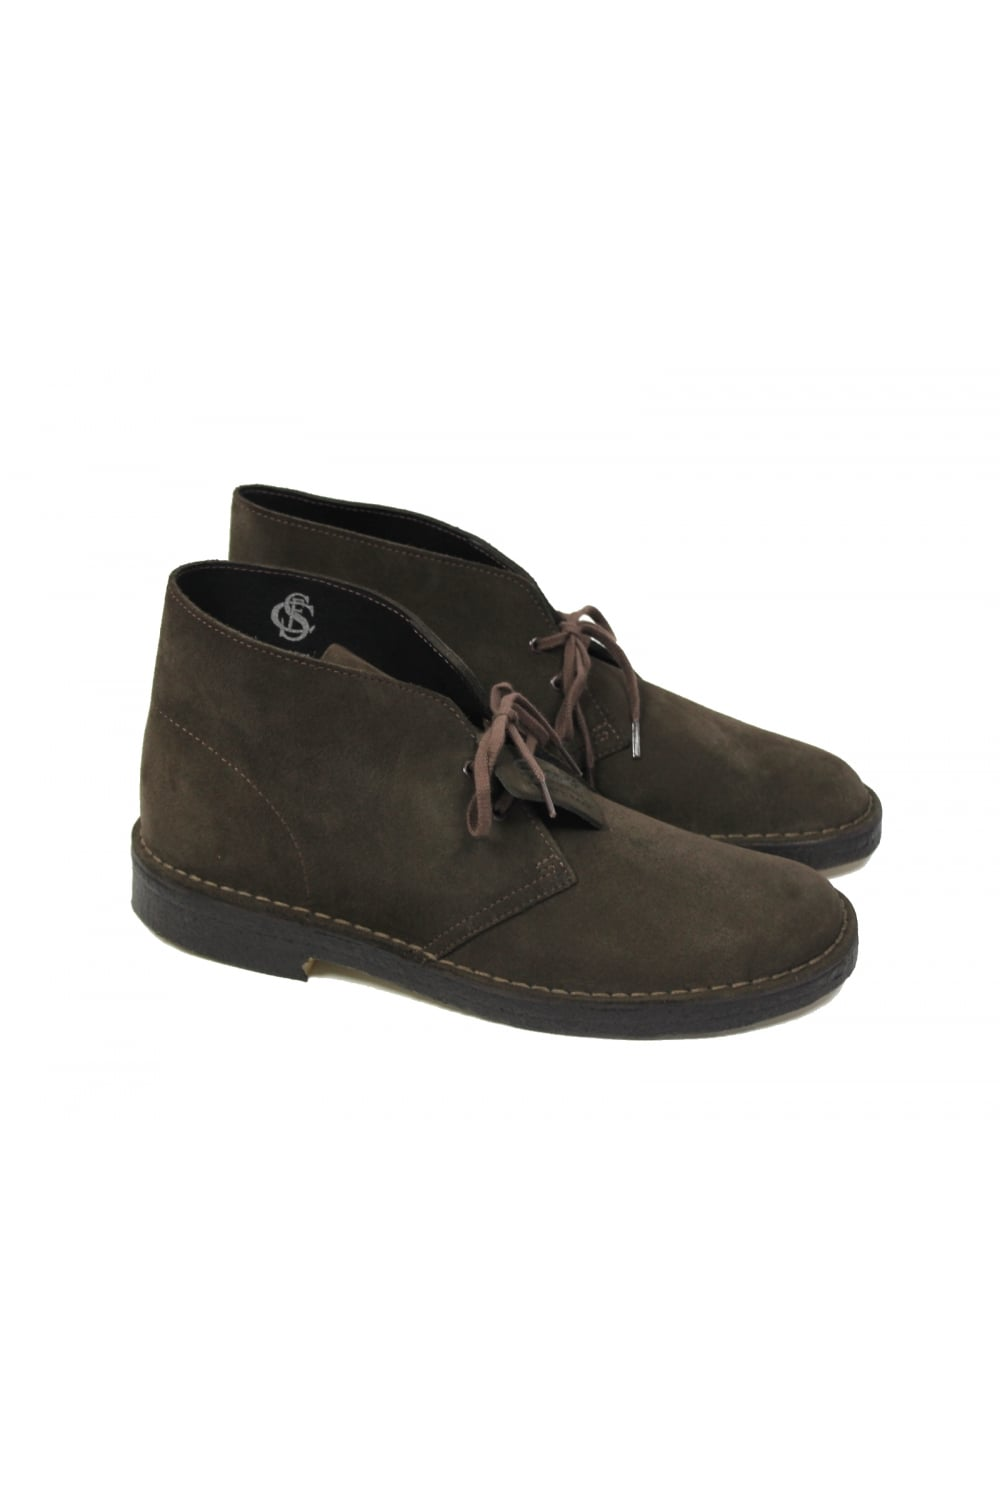 2530addd6ad Clarks Originals Suede Desert Boots (Dark Brown)